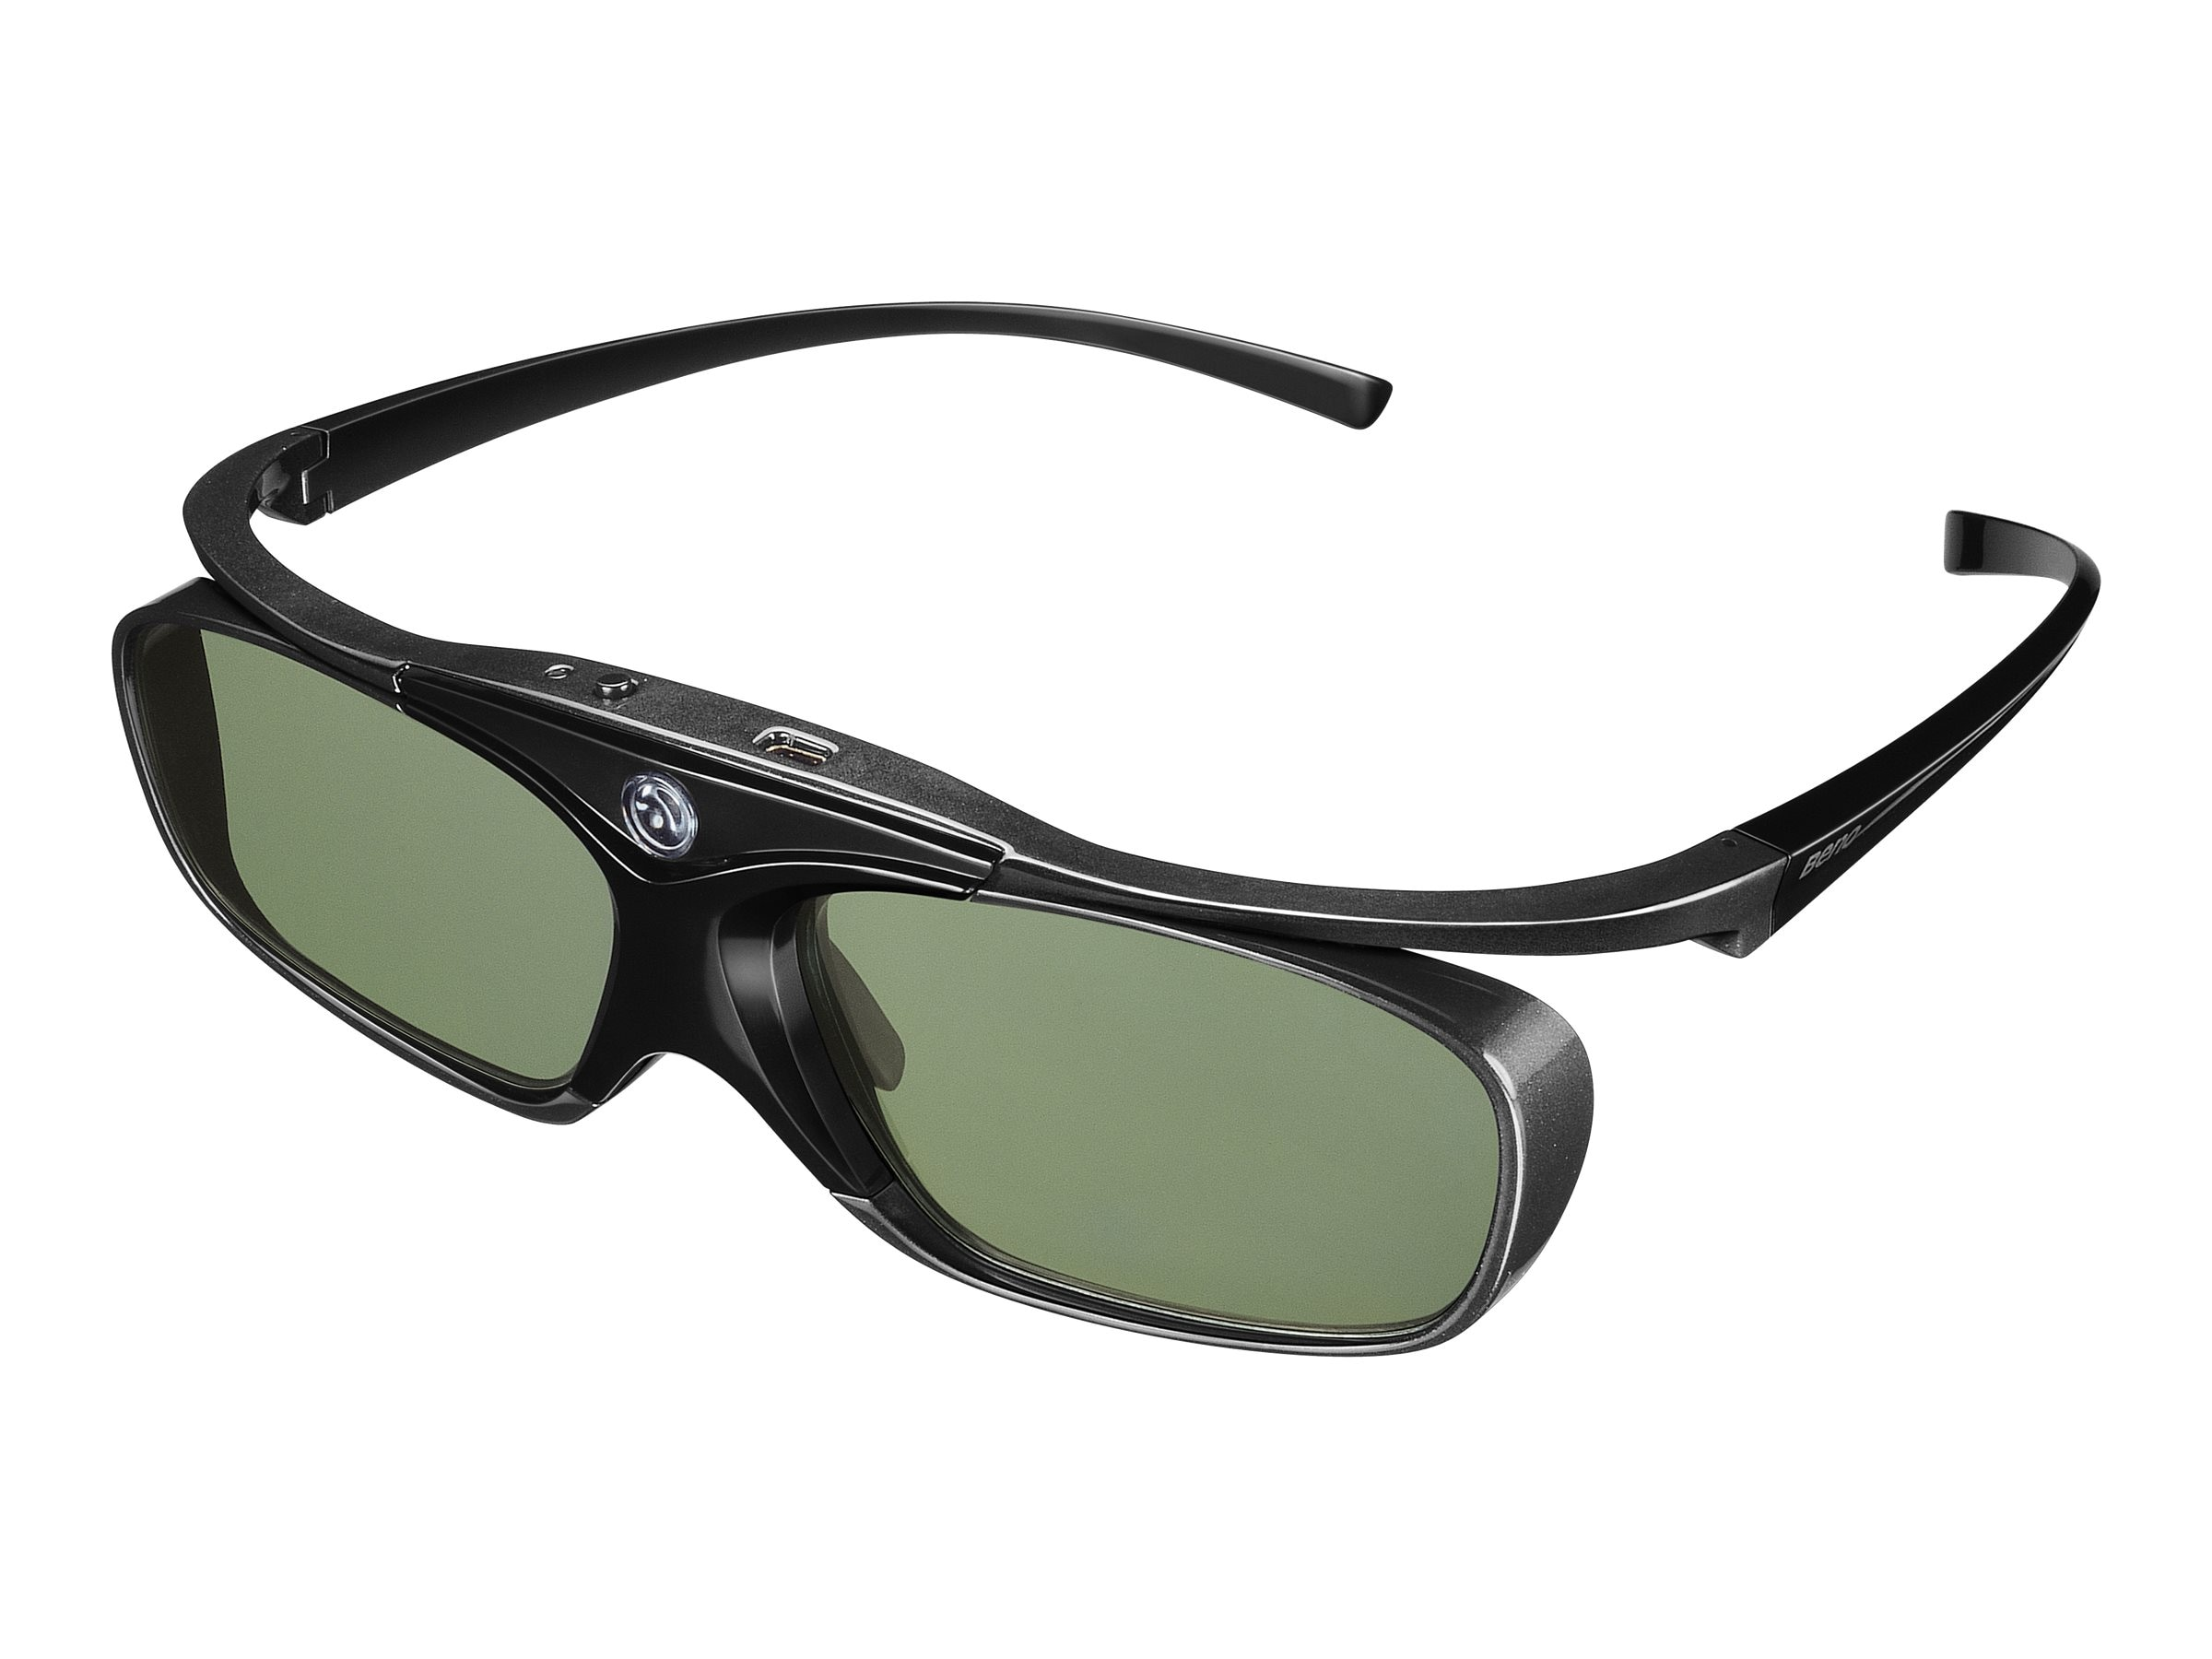 Benq Active 3D Glasses 5TH Generation with DLP Link